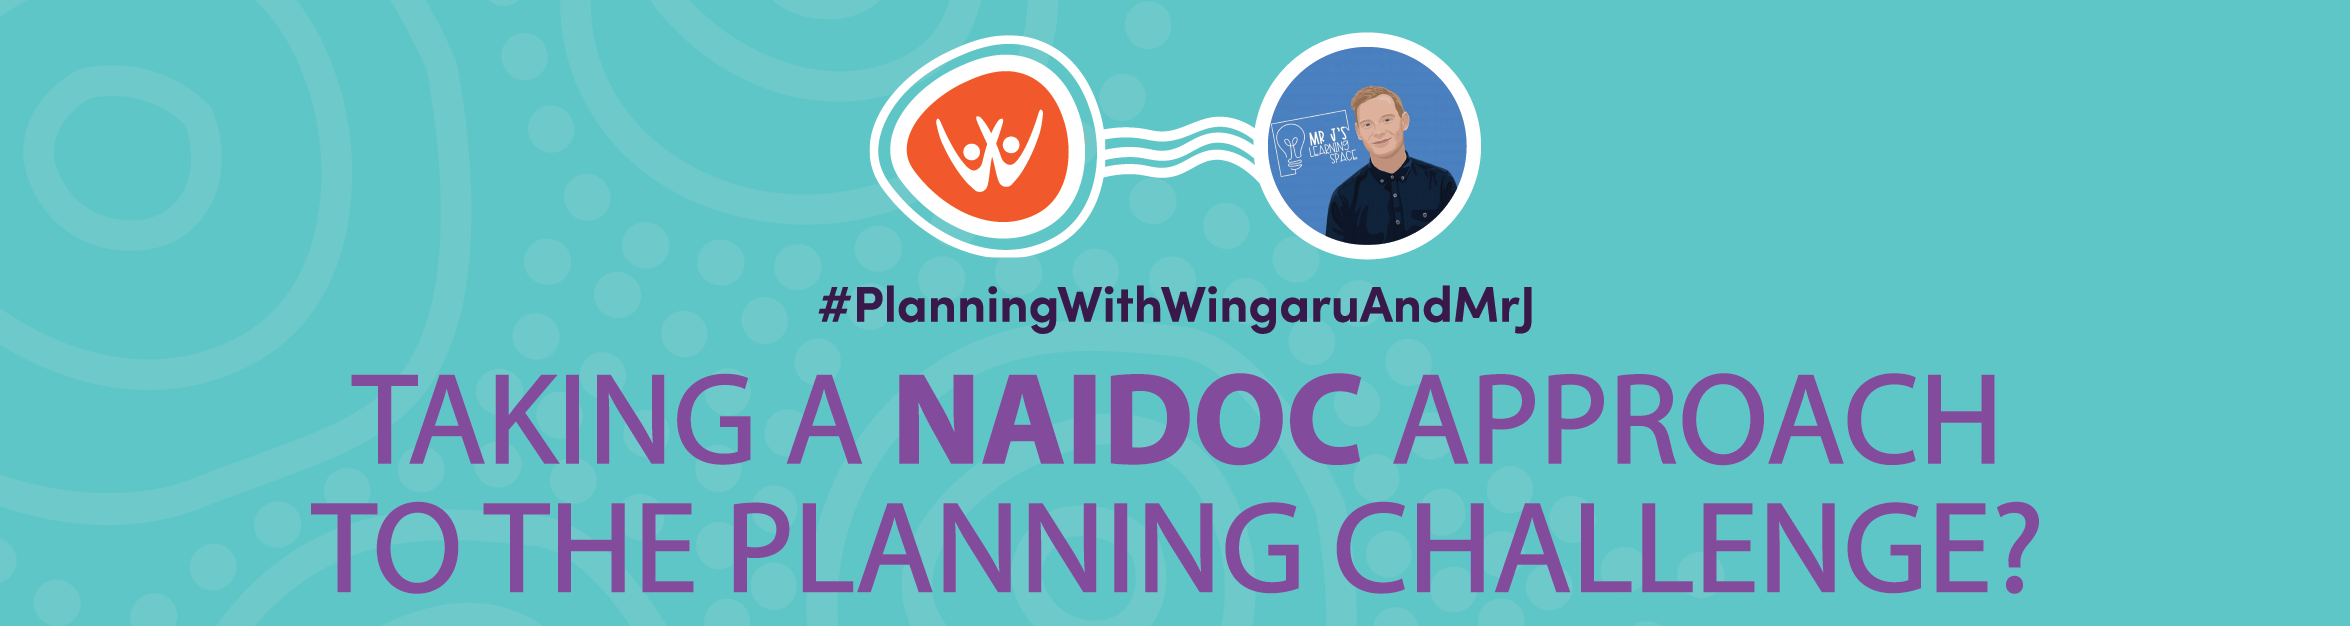 Taking a NAIDOC approach to the Planning Challenge